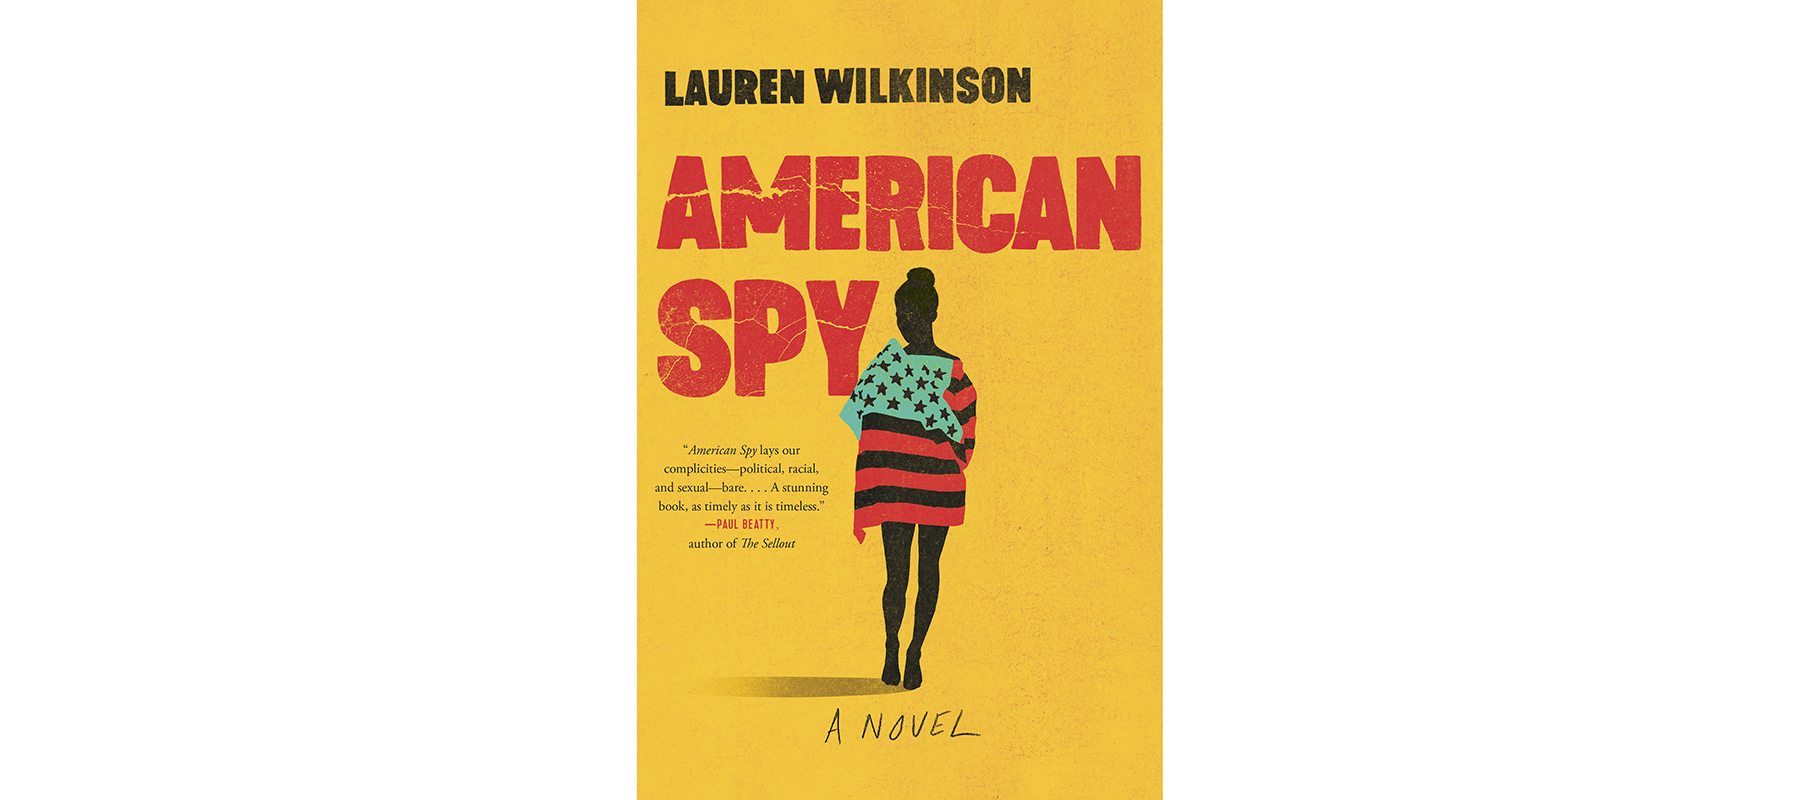 American Spy, by Lauren Wilkinson